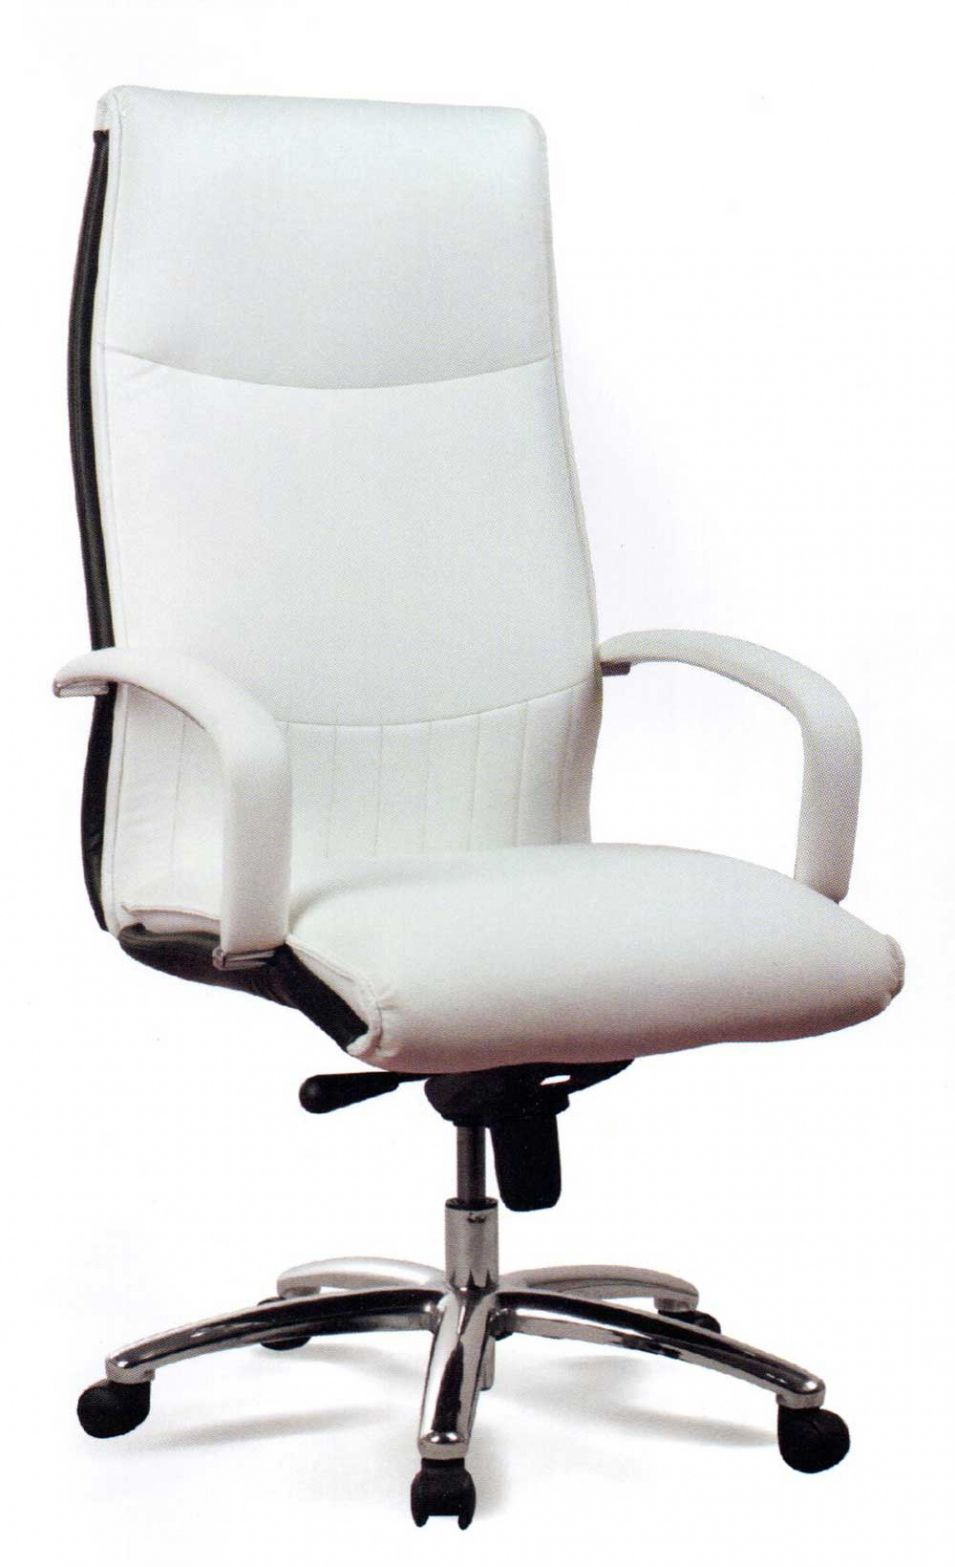 70 Ergonomic Leather Executive Chair Home Office Furniture